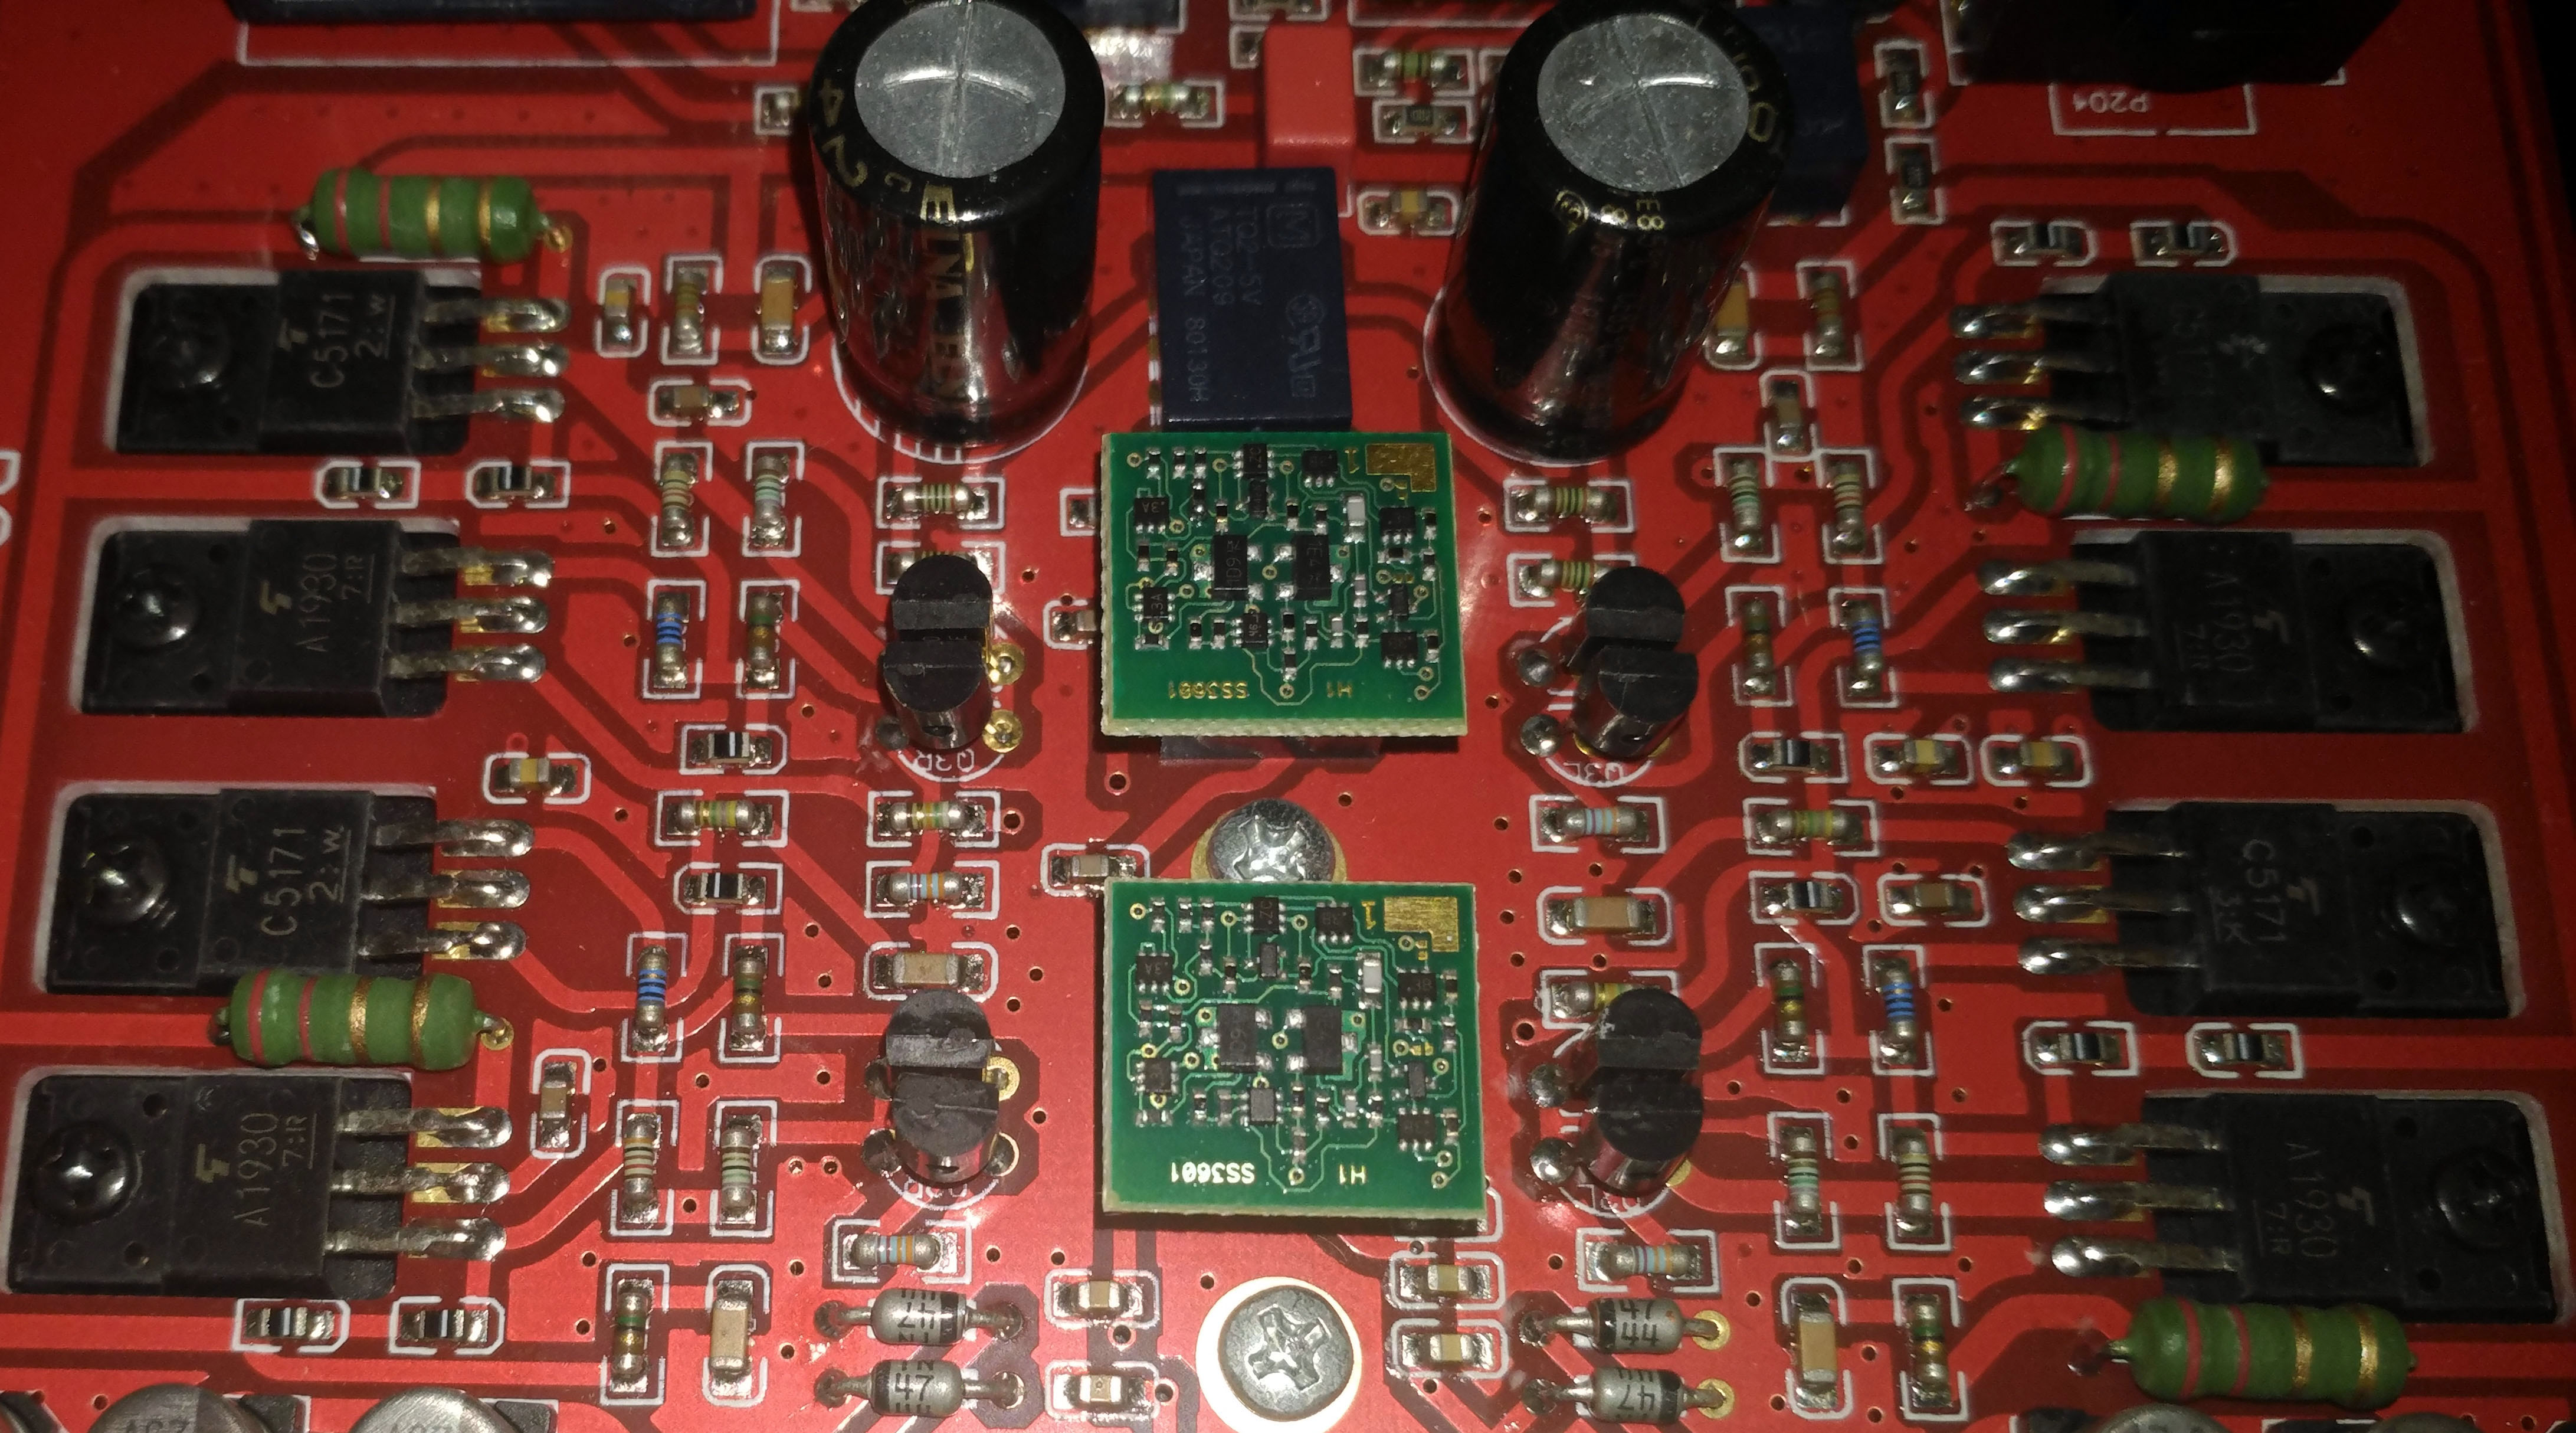 Burson Audio Fun Reviews Headphone And Discussion Head Low Noise Mic Preamp Using Ne5534 Ic Circuit Diagram Ne5534s Installed 07 Ss3601s